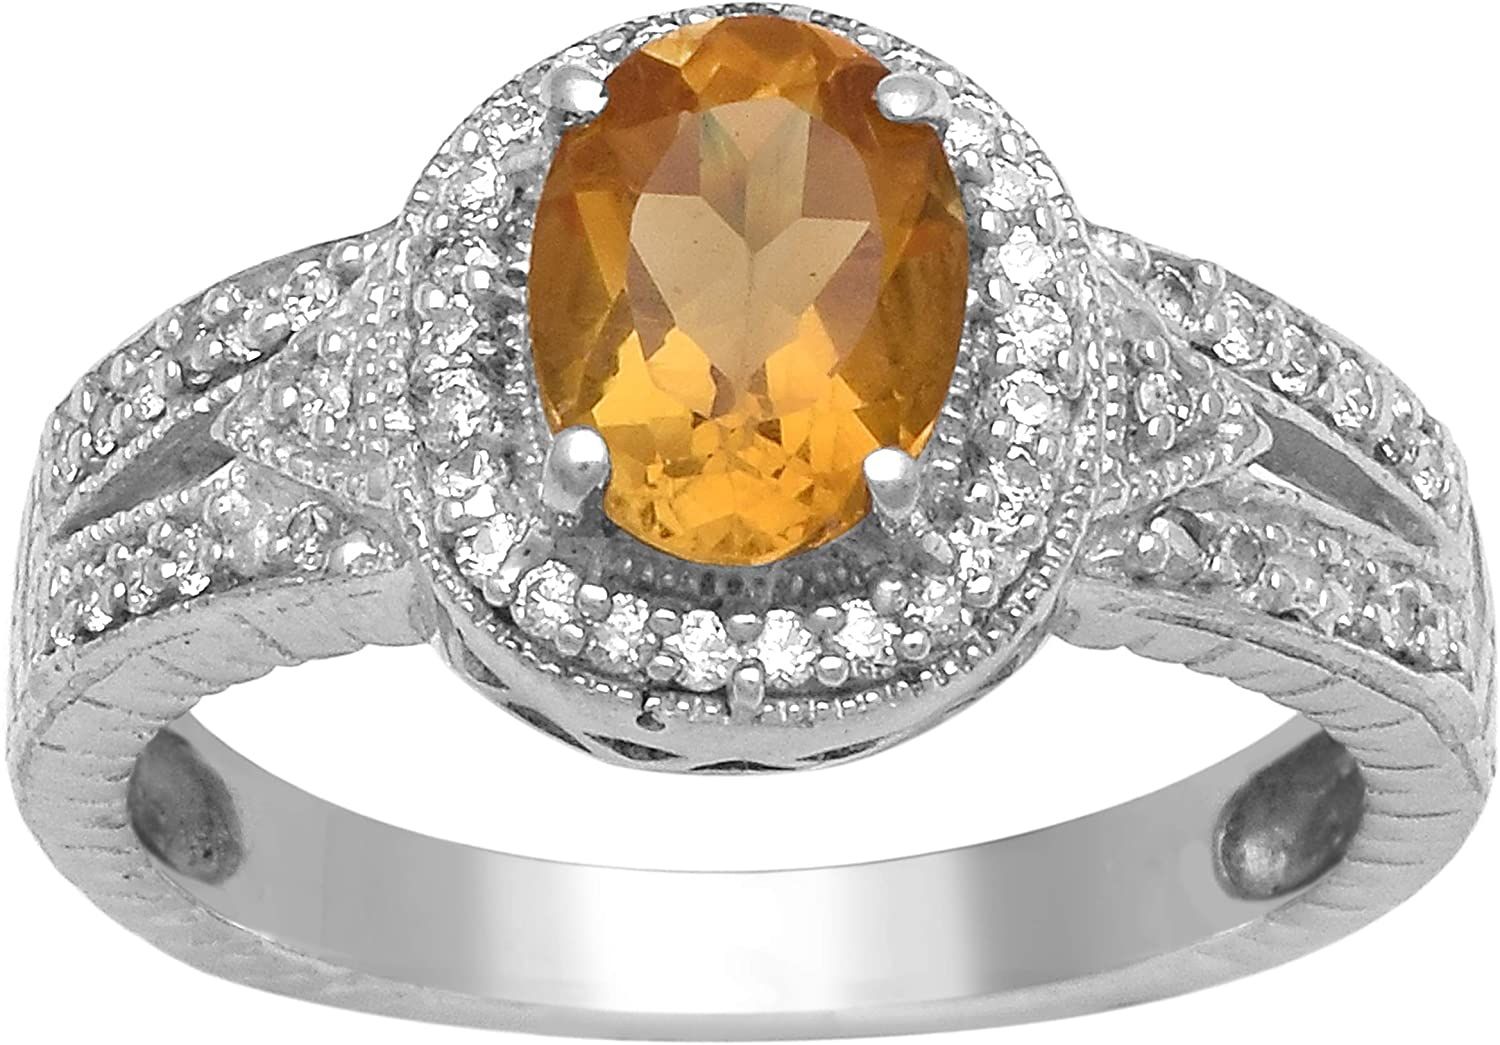 Shine Jewel Champagne Citrine 1.500 Ctw Gemstone 925 Sterling Silver Solitaire Accents Ring